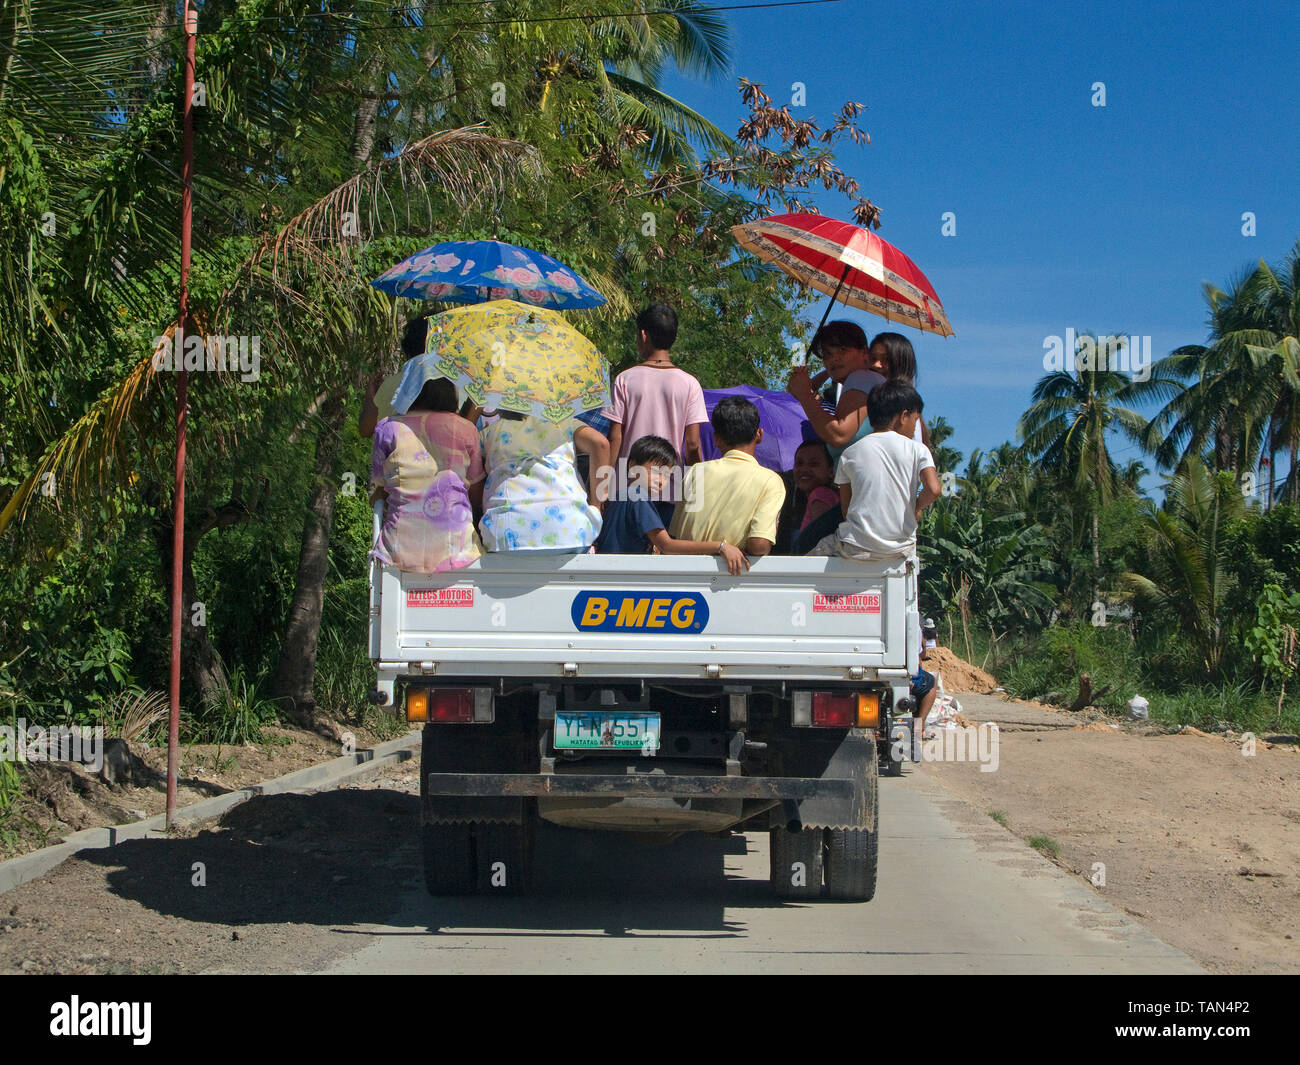 Locals on a truck, common public transportation in the Philippines, Moalboal, Cebu, Visayas, Philippines - Stock Image